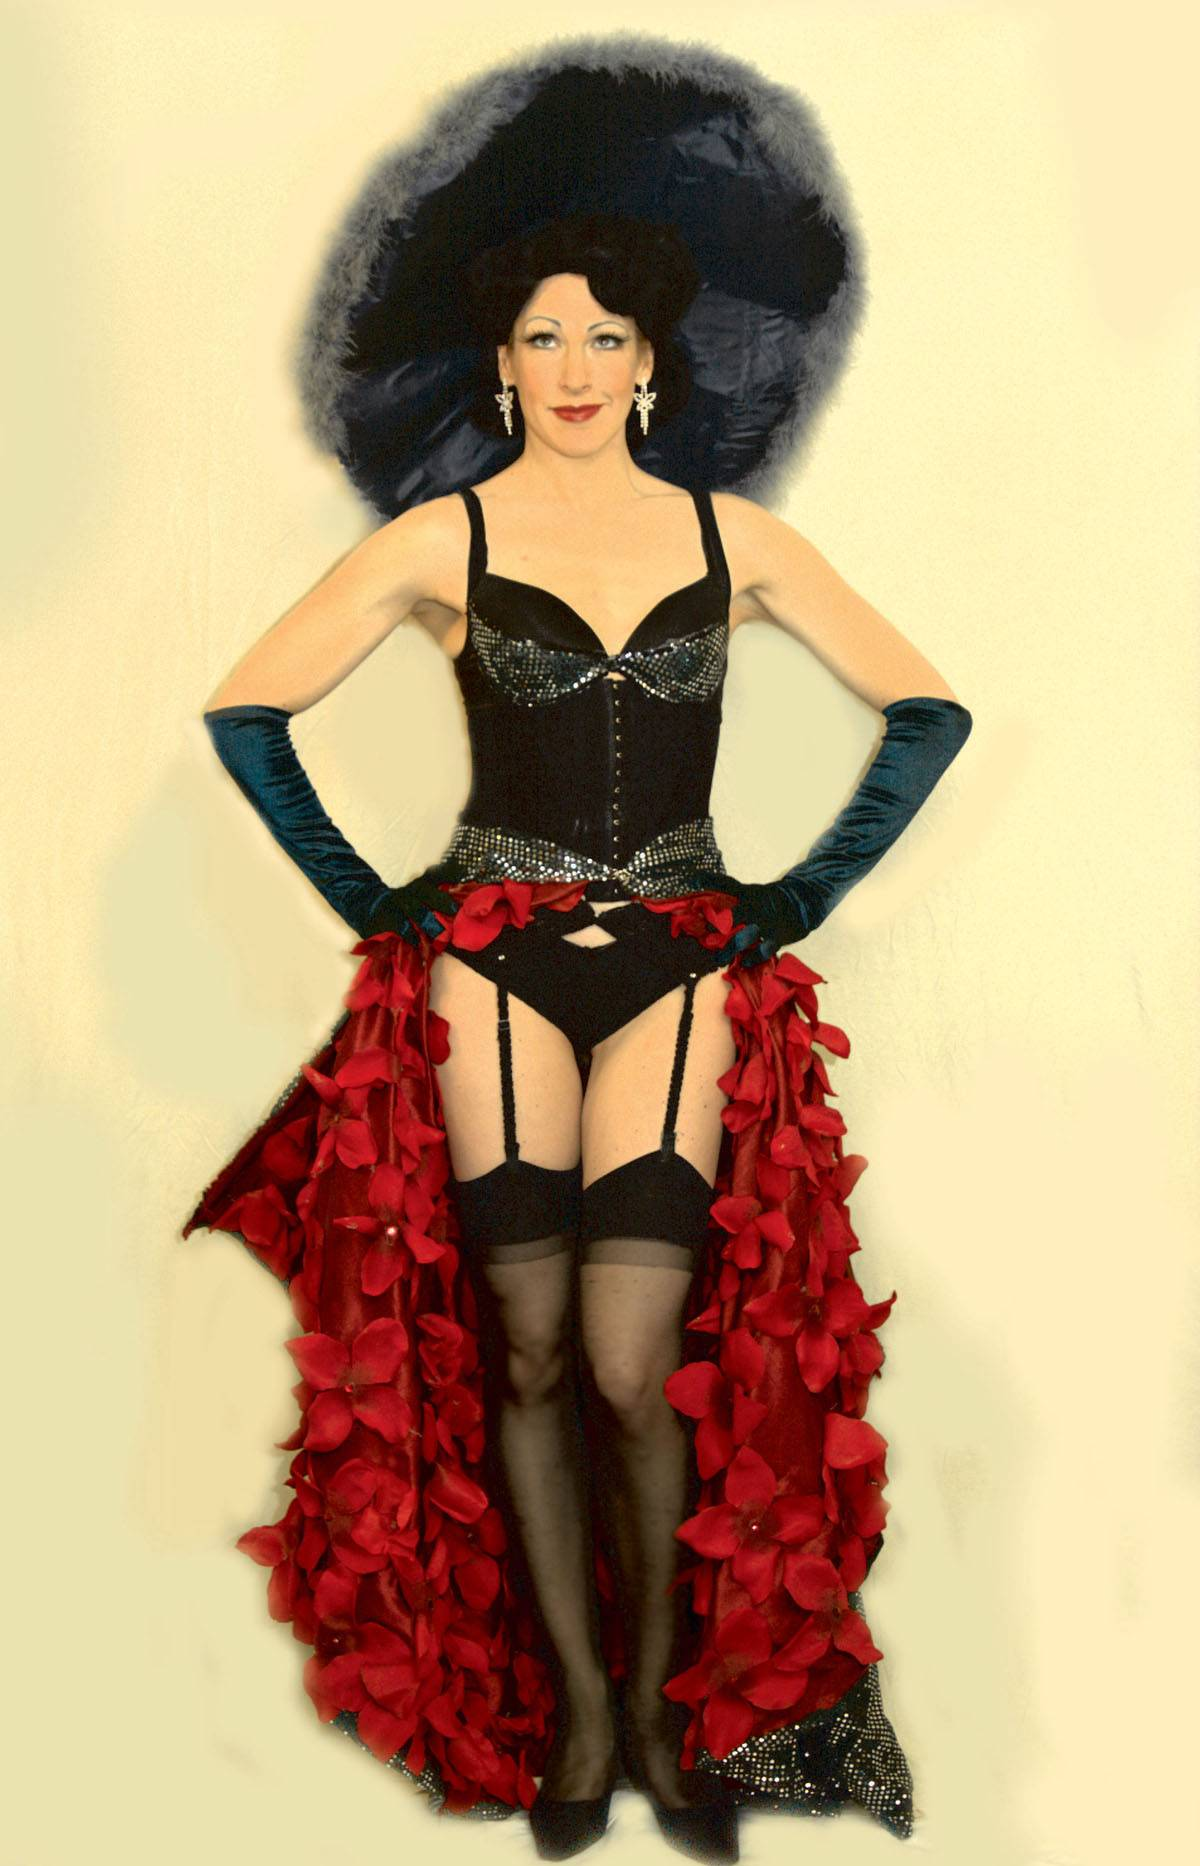 Burgundy Brixx burlesque dancer